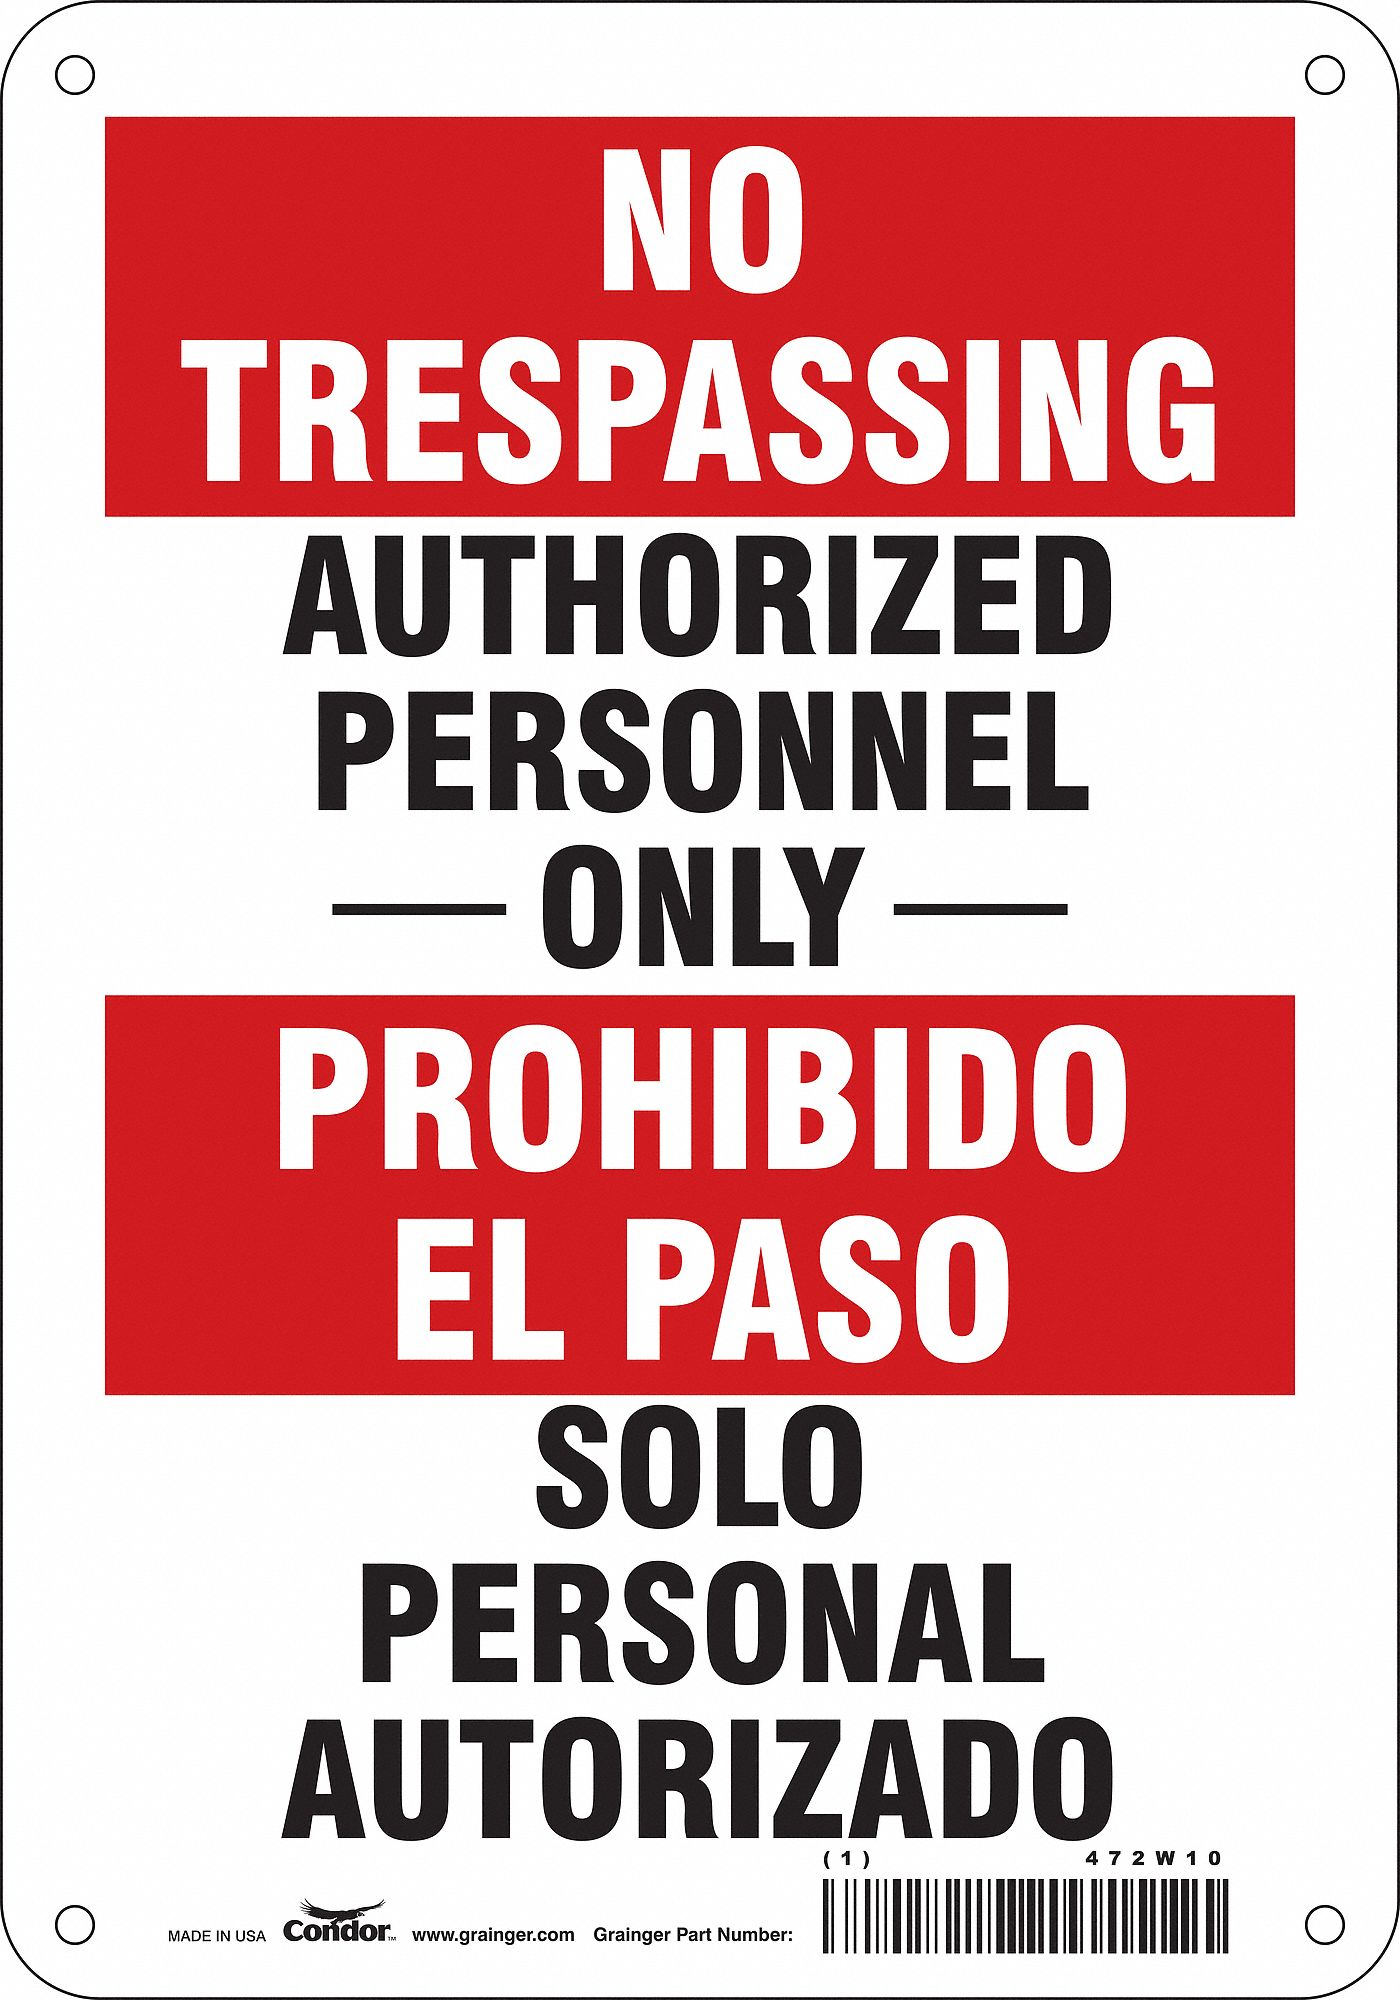 Details about  /CONDOR 479L98 Safety Sign,7 in x 10 in,Aluminum